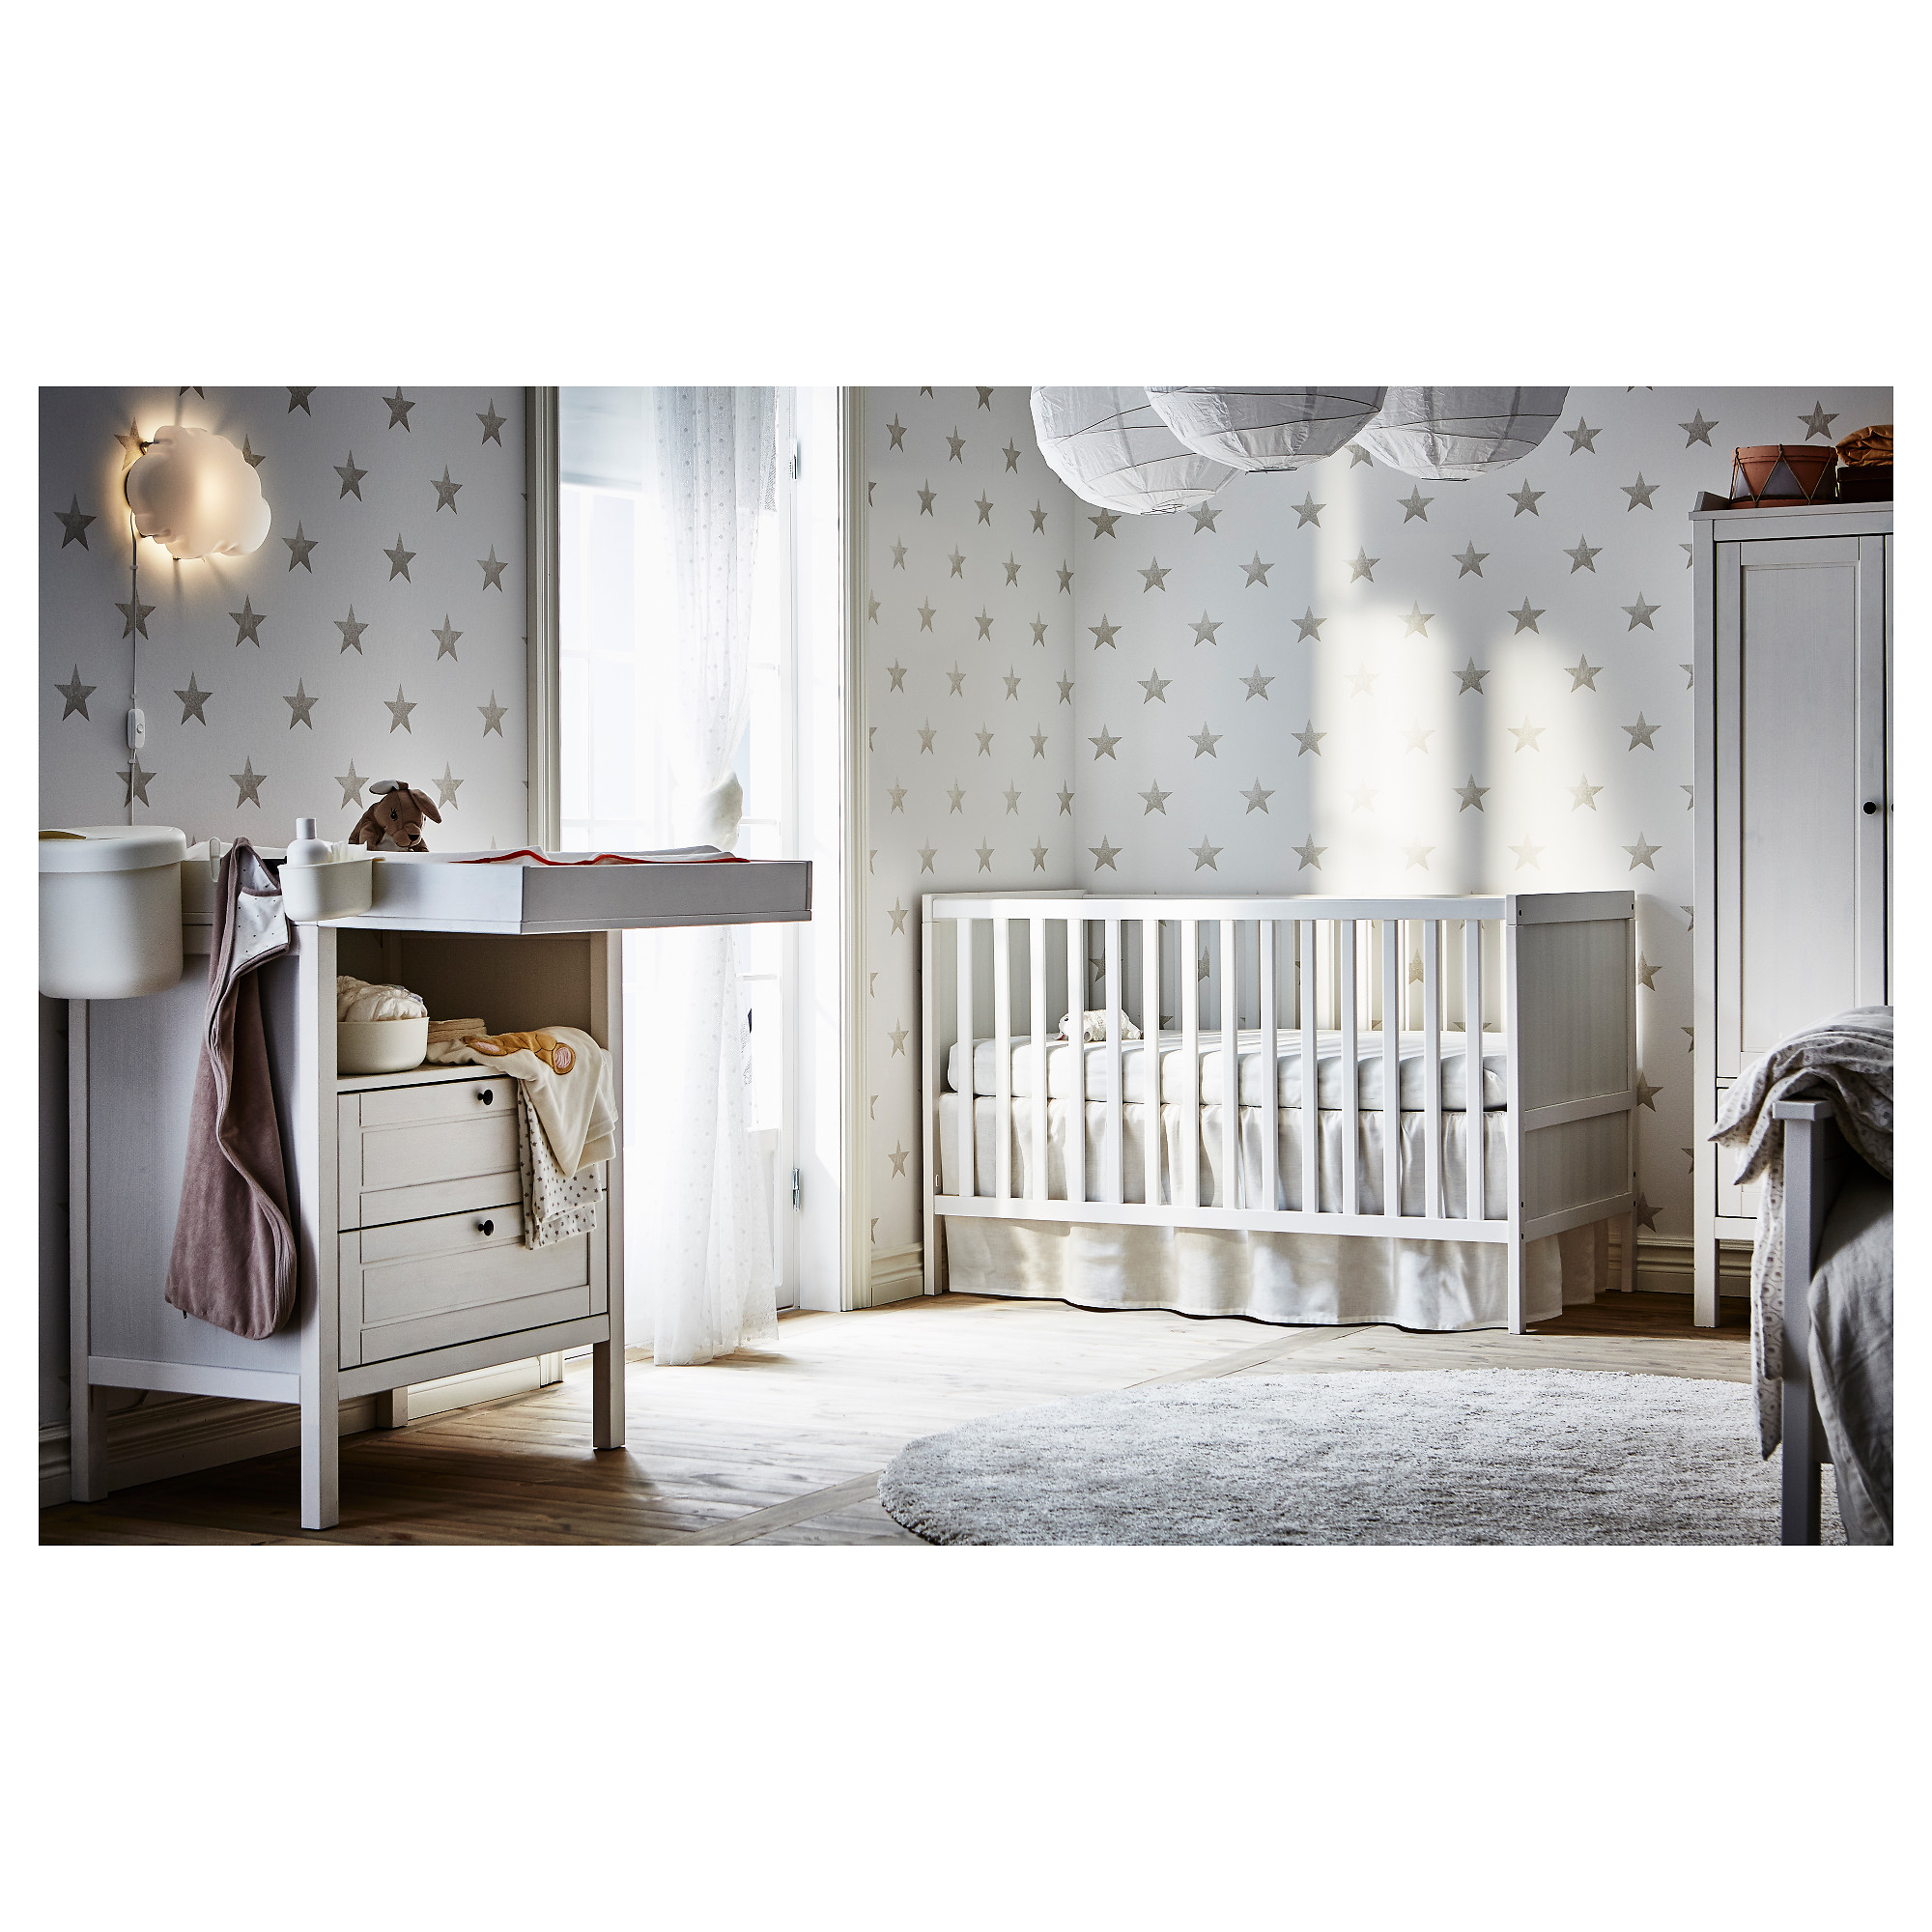 Baby cribs york region - Baby Cribs York Region 34